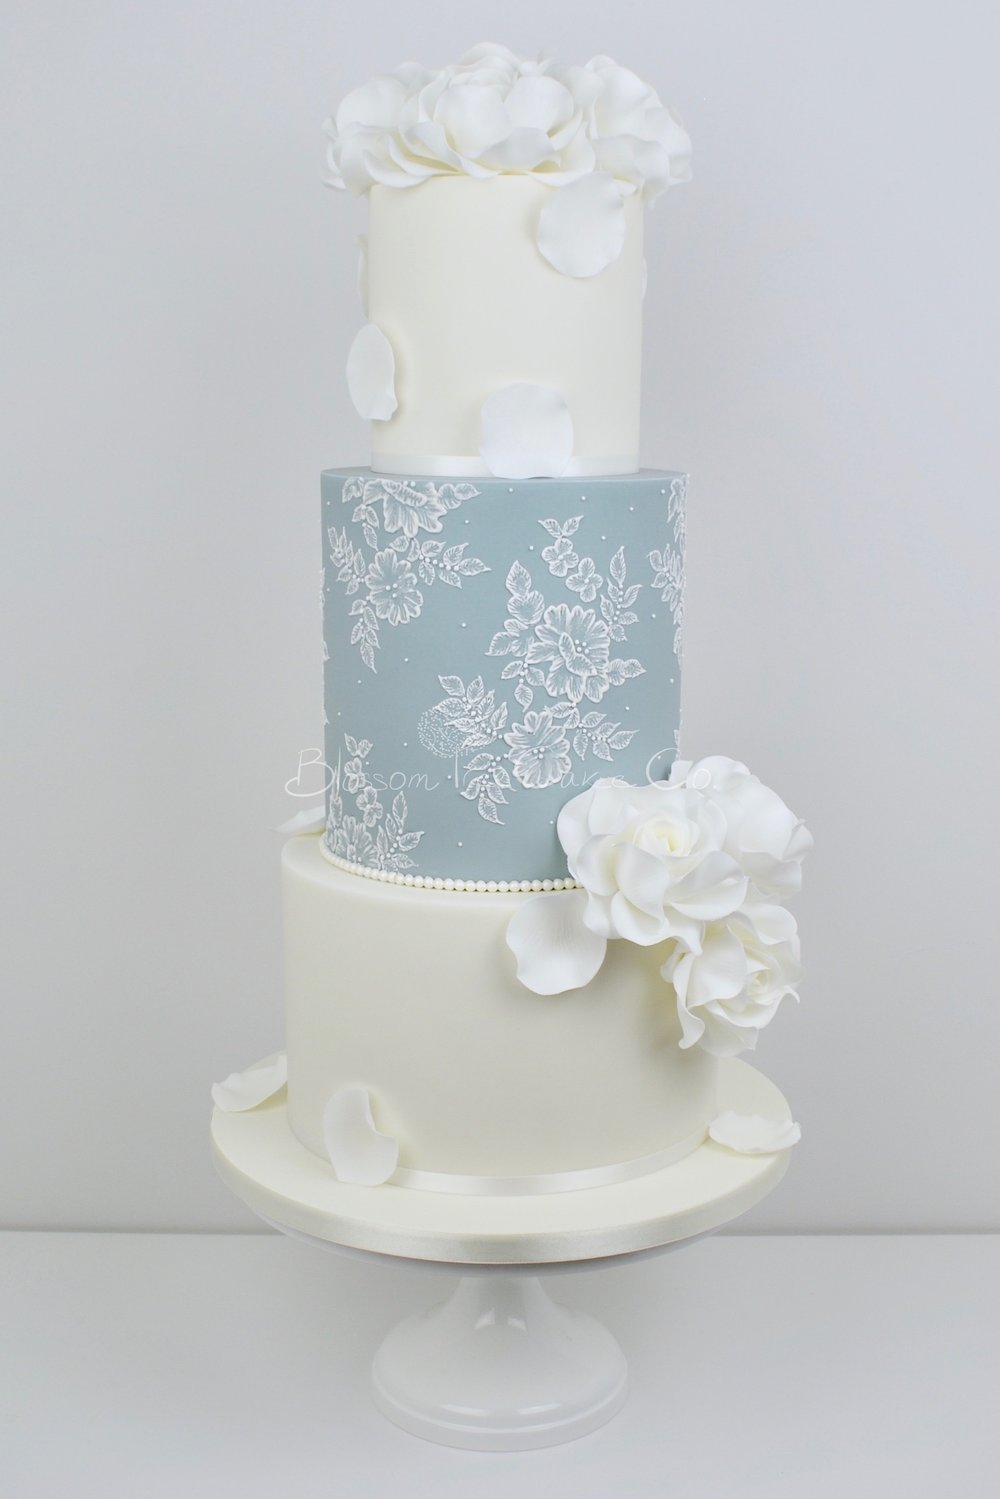 White Roses and Lace wedding cake by Blossom Tree Cake Company Harrogate North Yorkshire